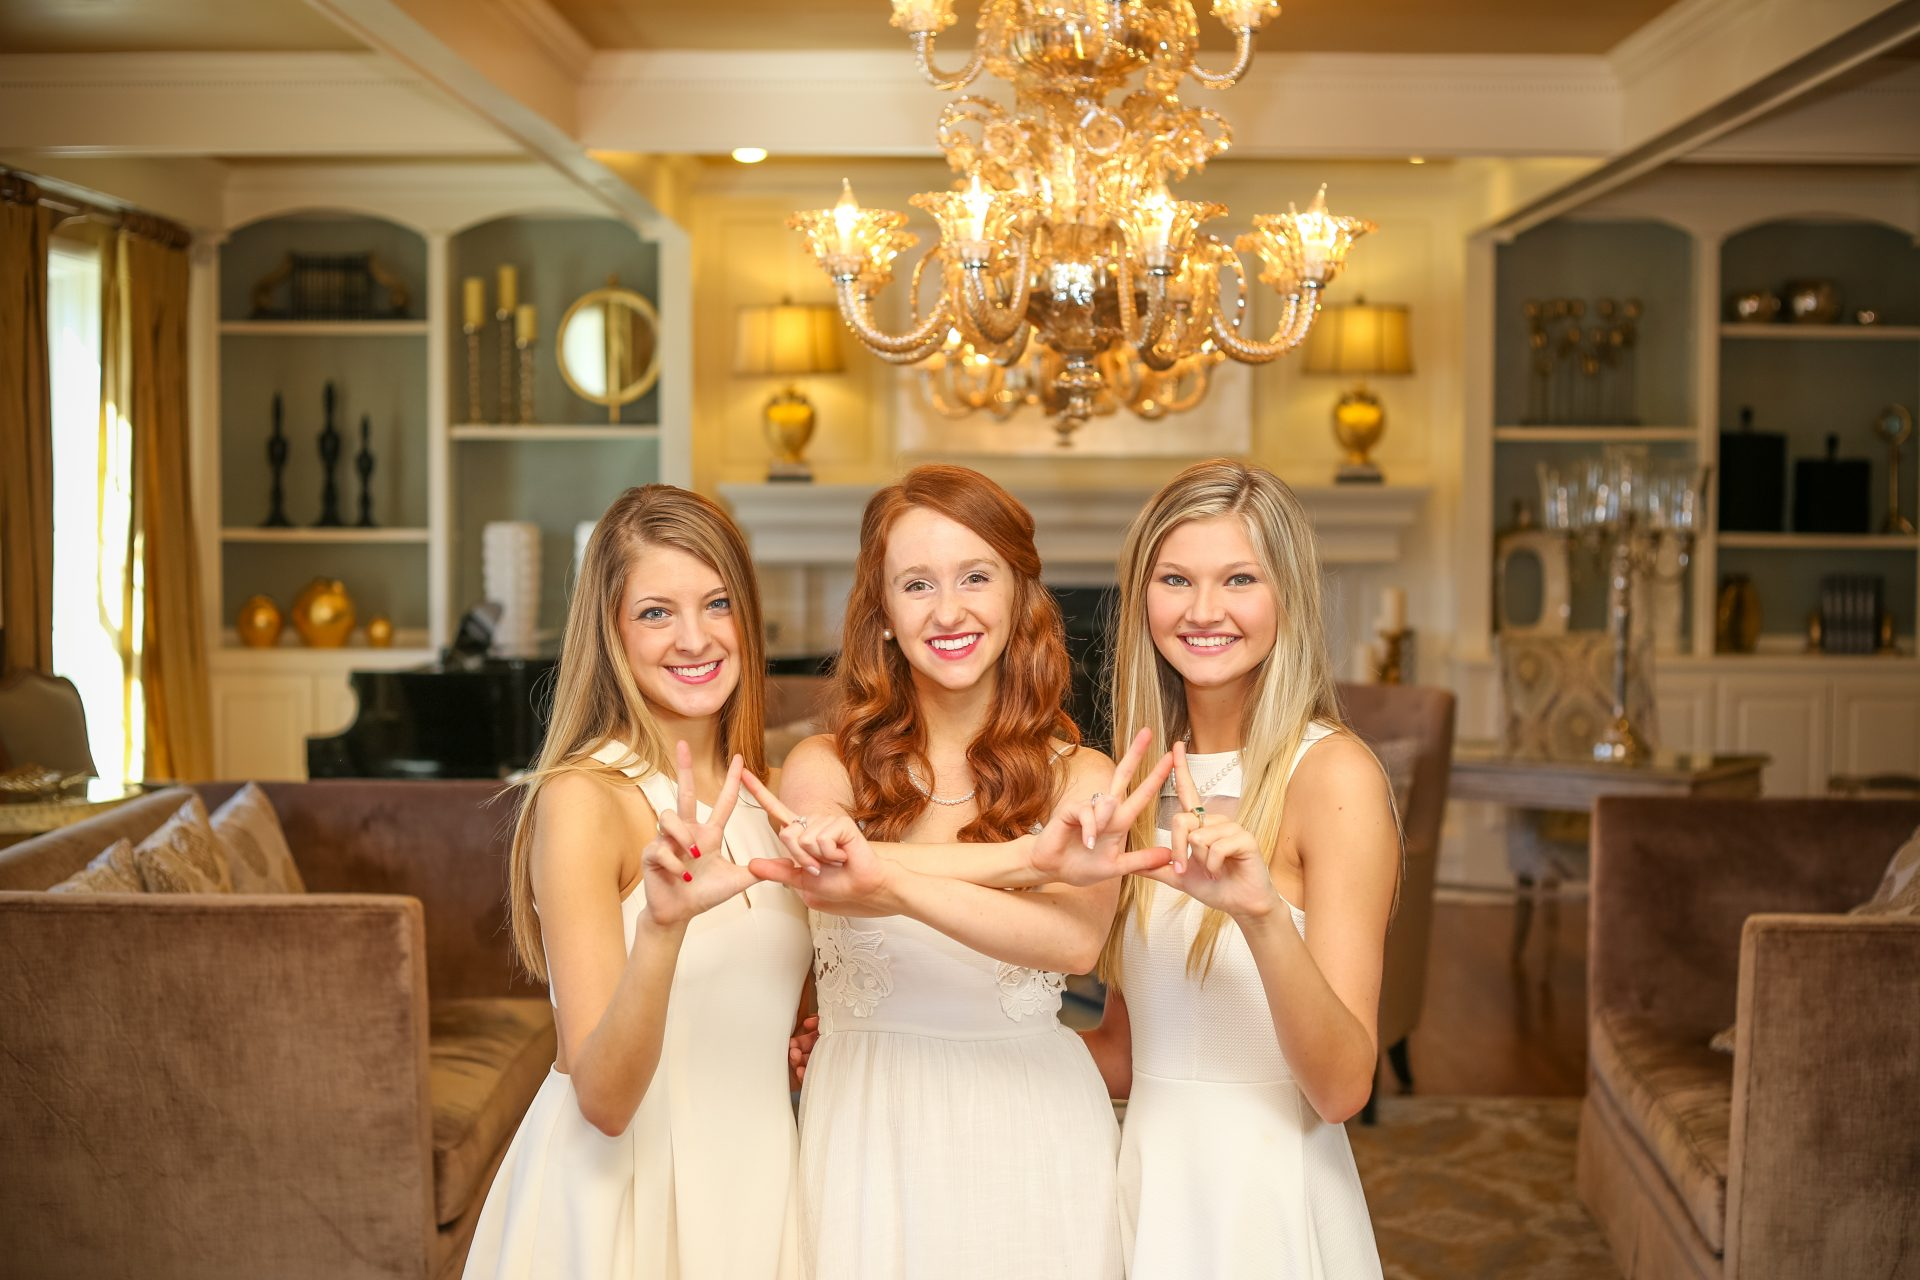 kd-sign-zeta-gamma-collegians-march-2015-300dpi-13